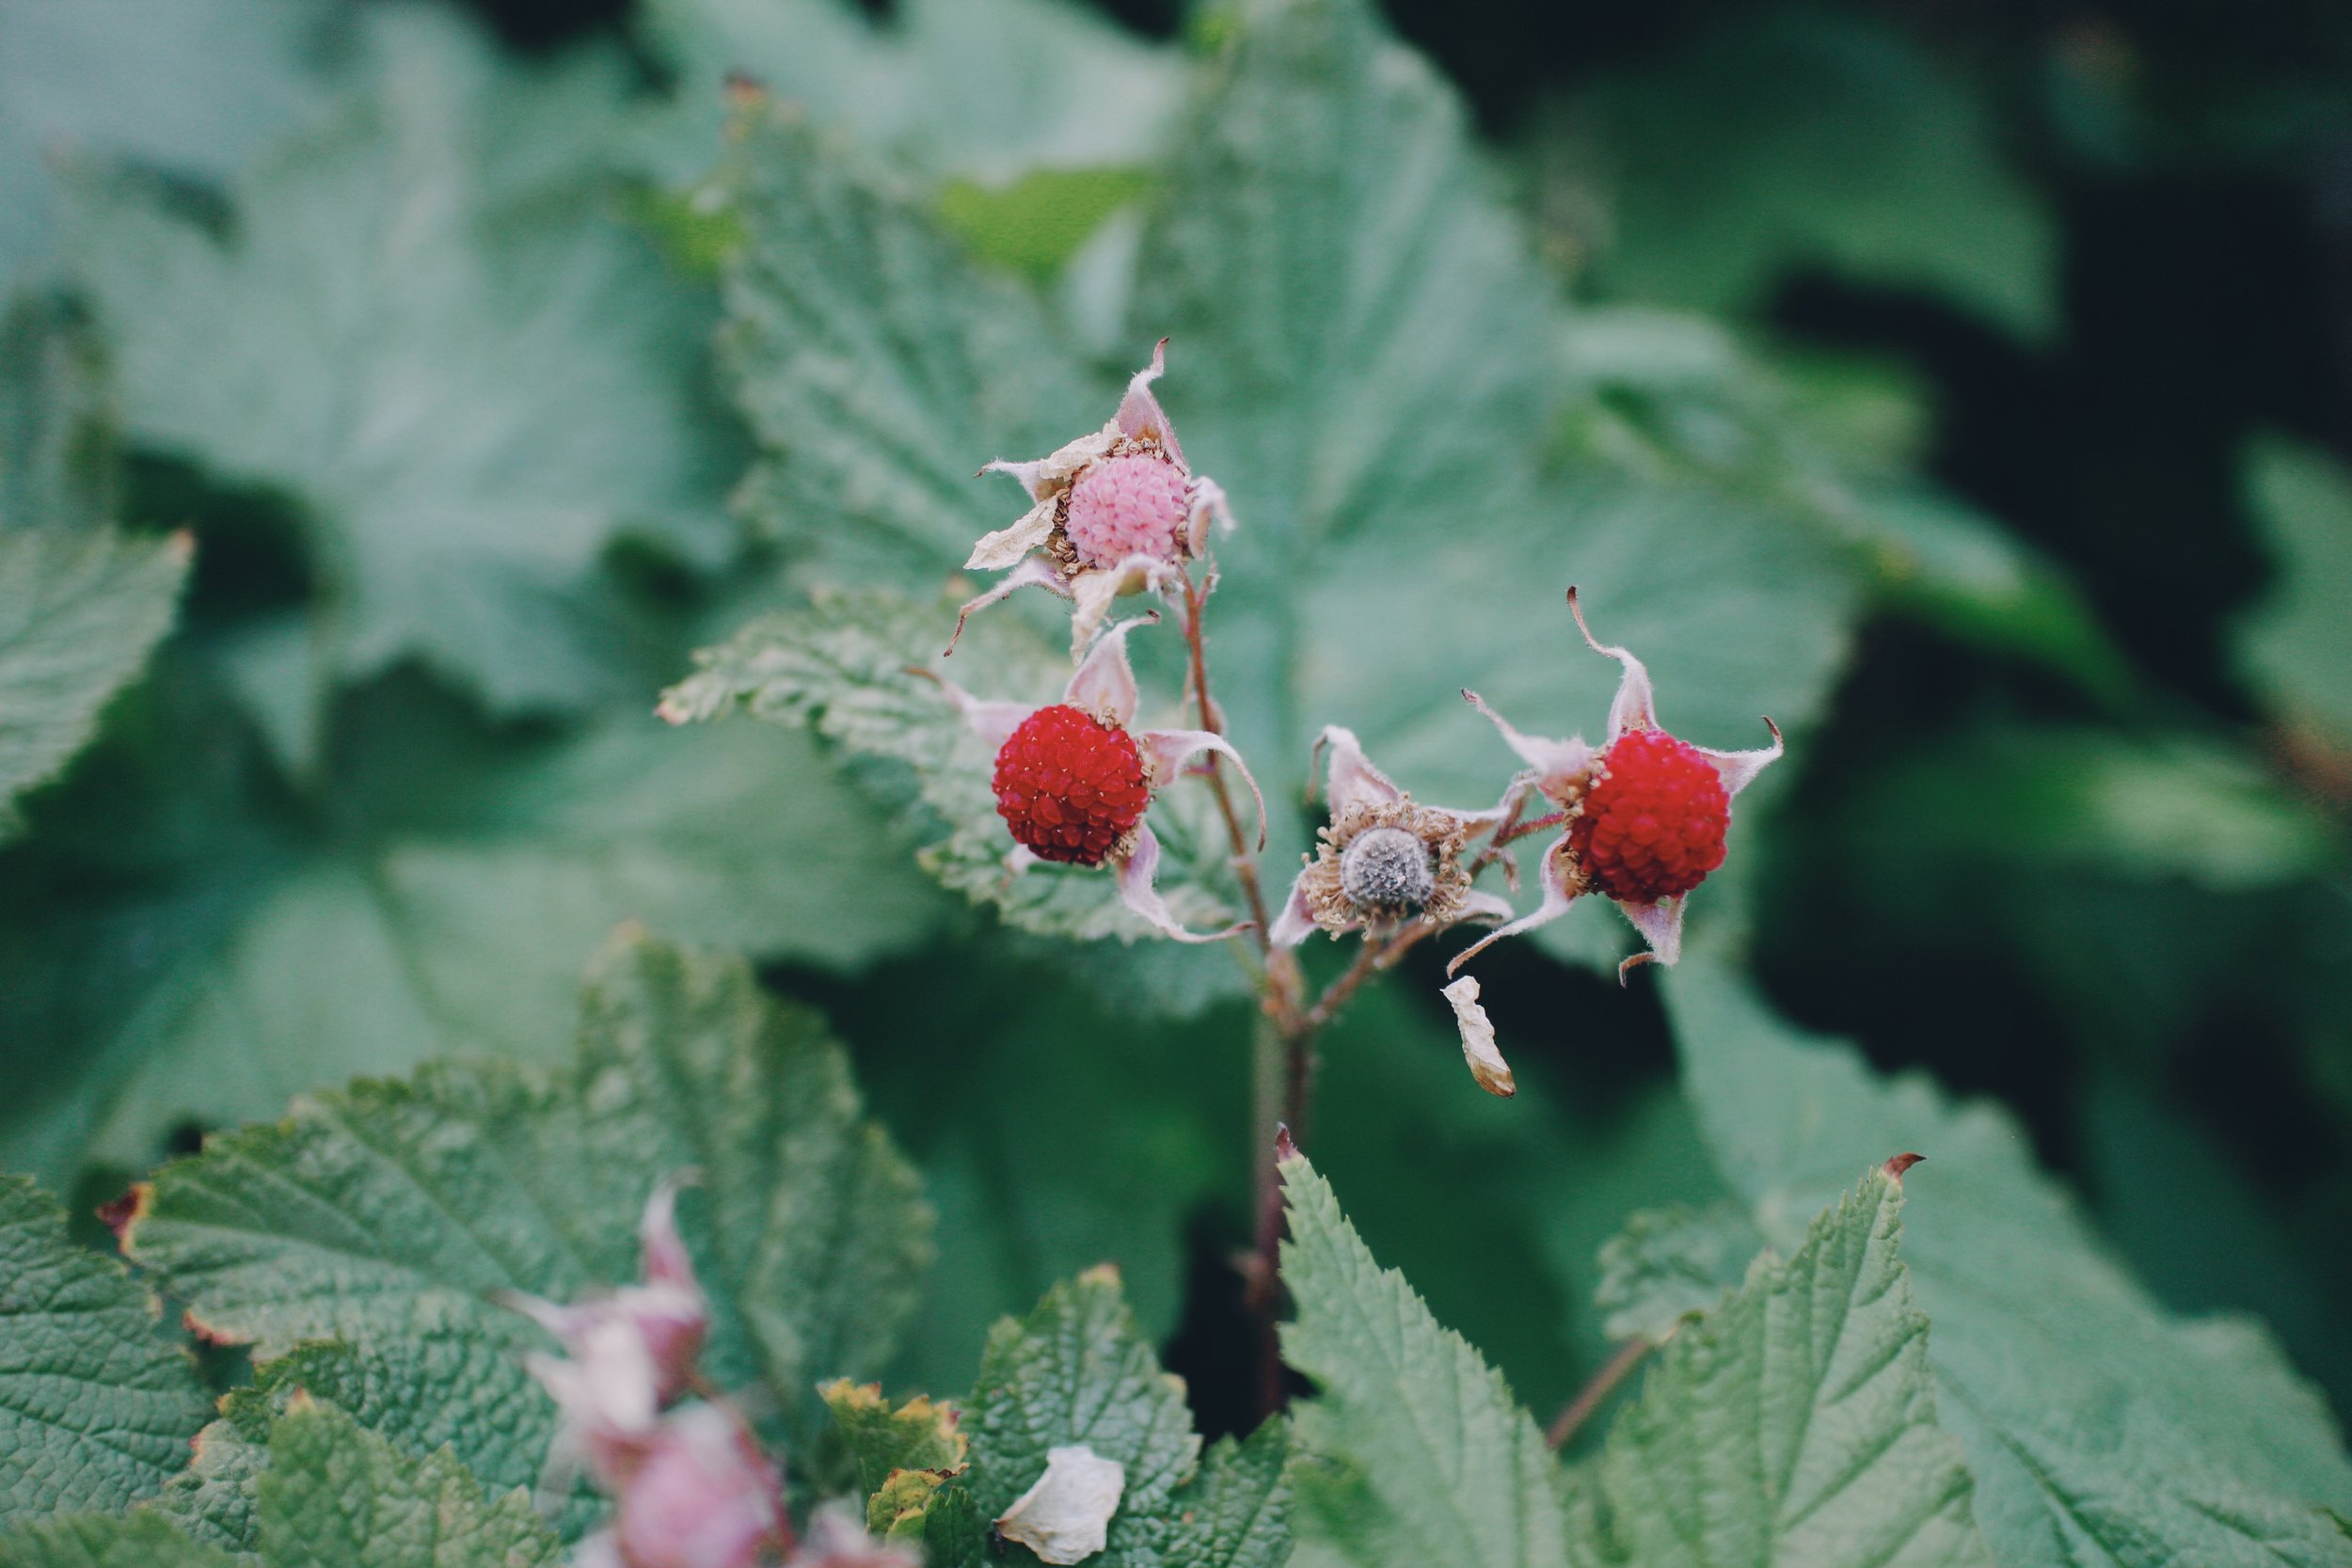 thimble berry. The best!